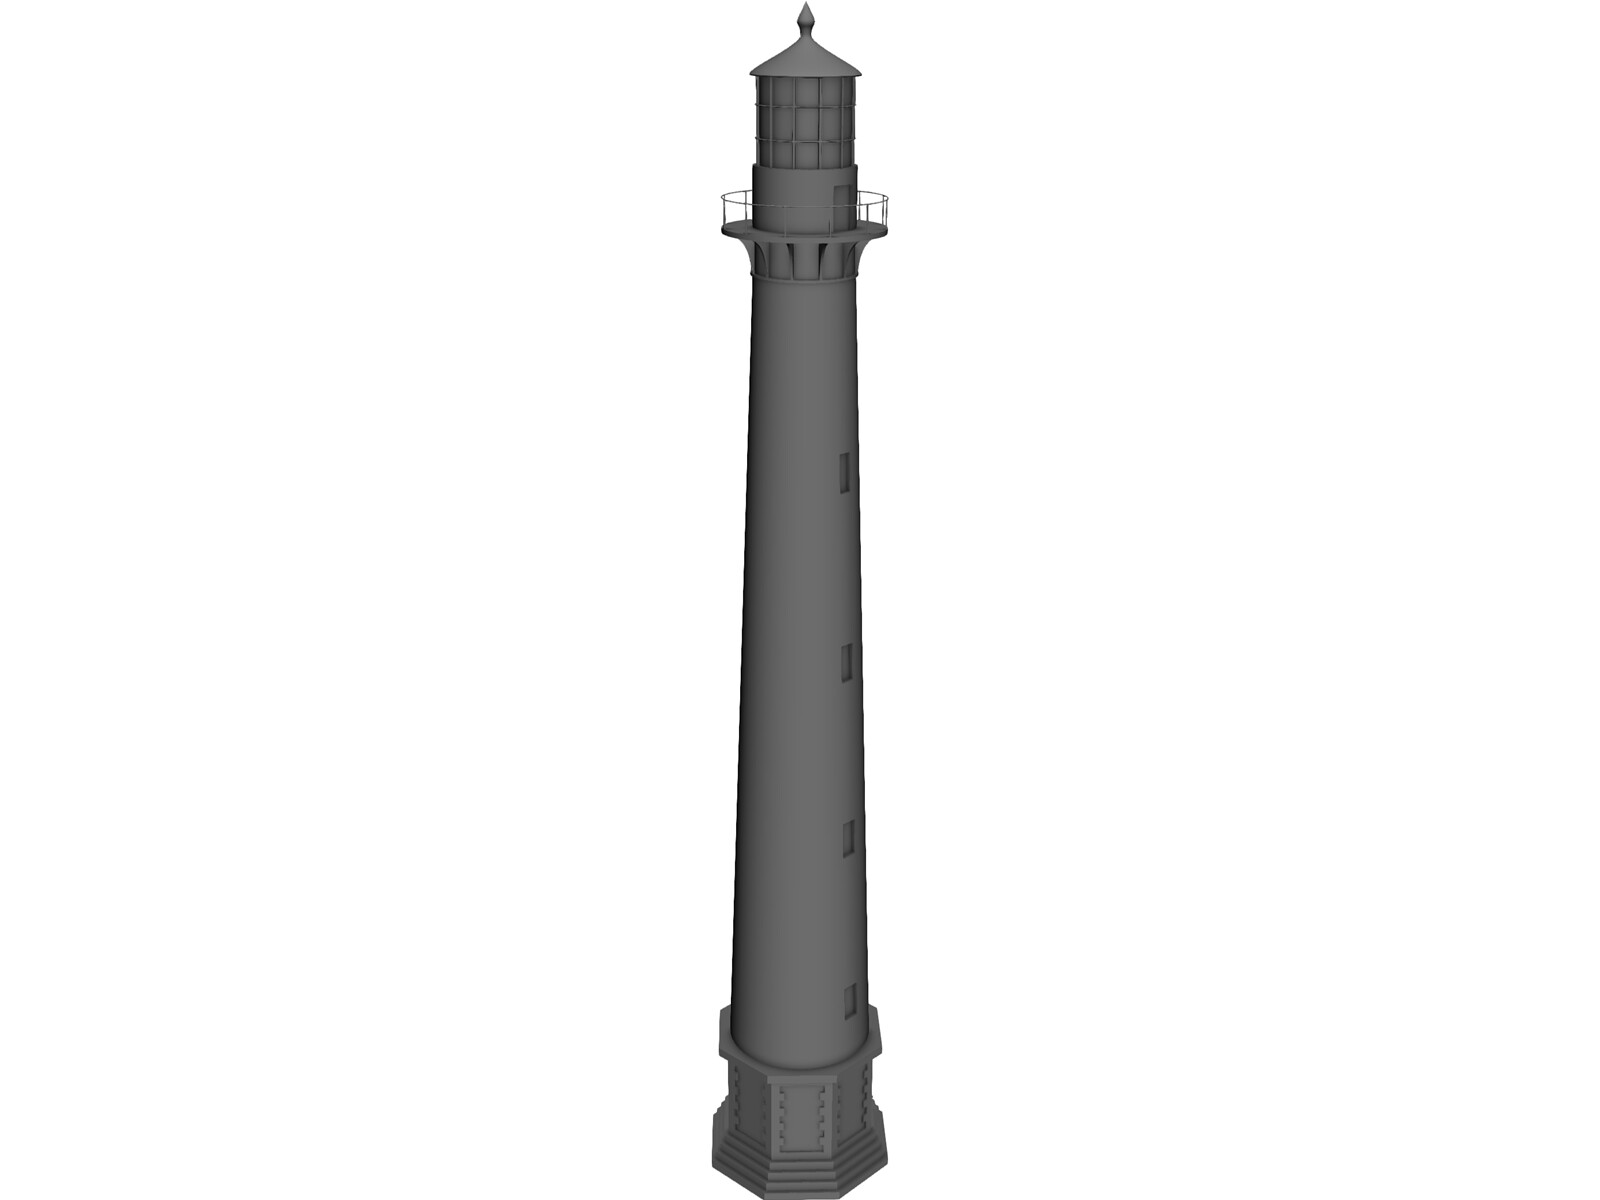 Lighthouse 3D Model